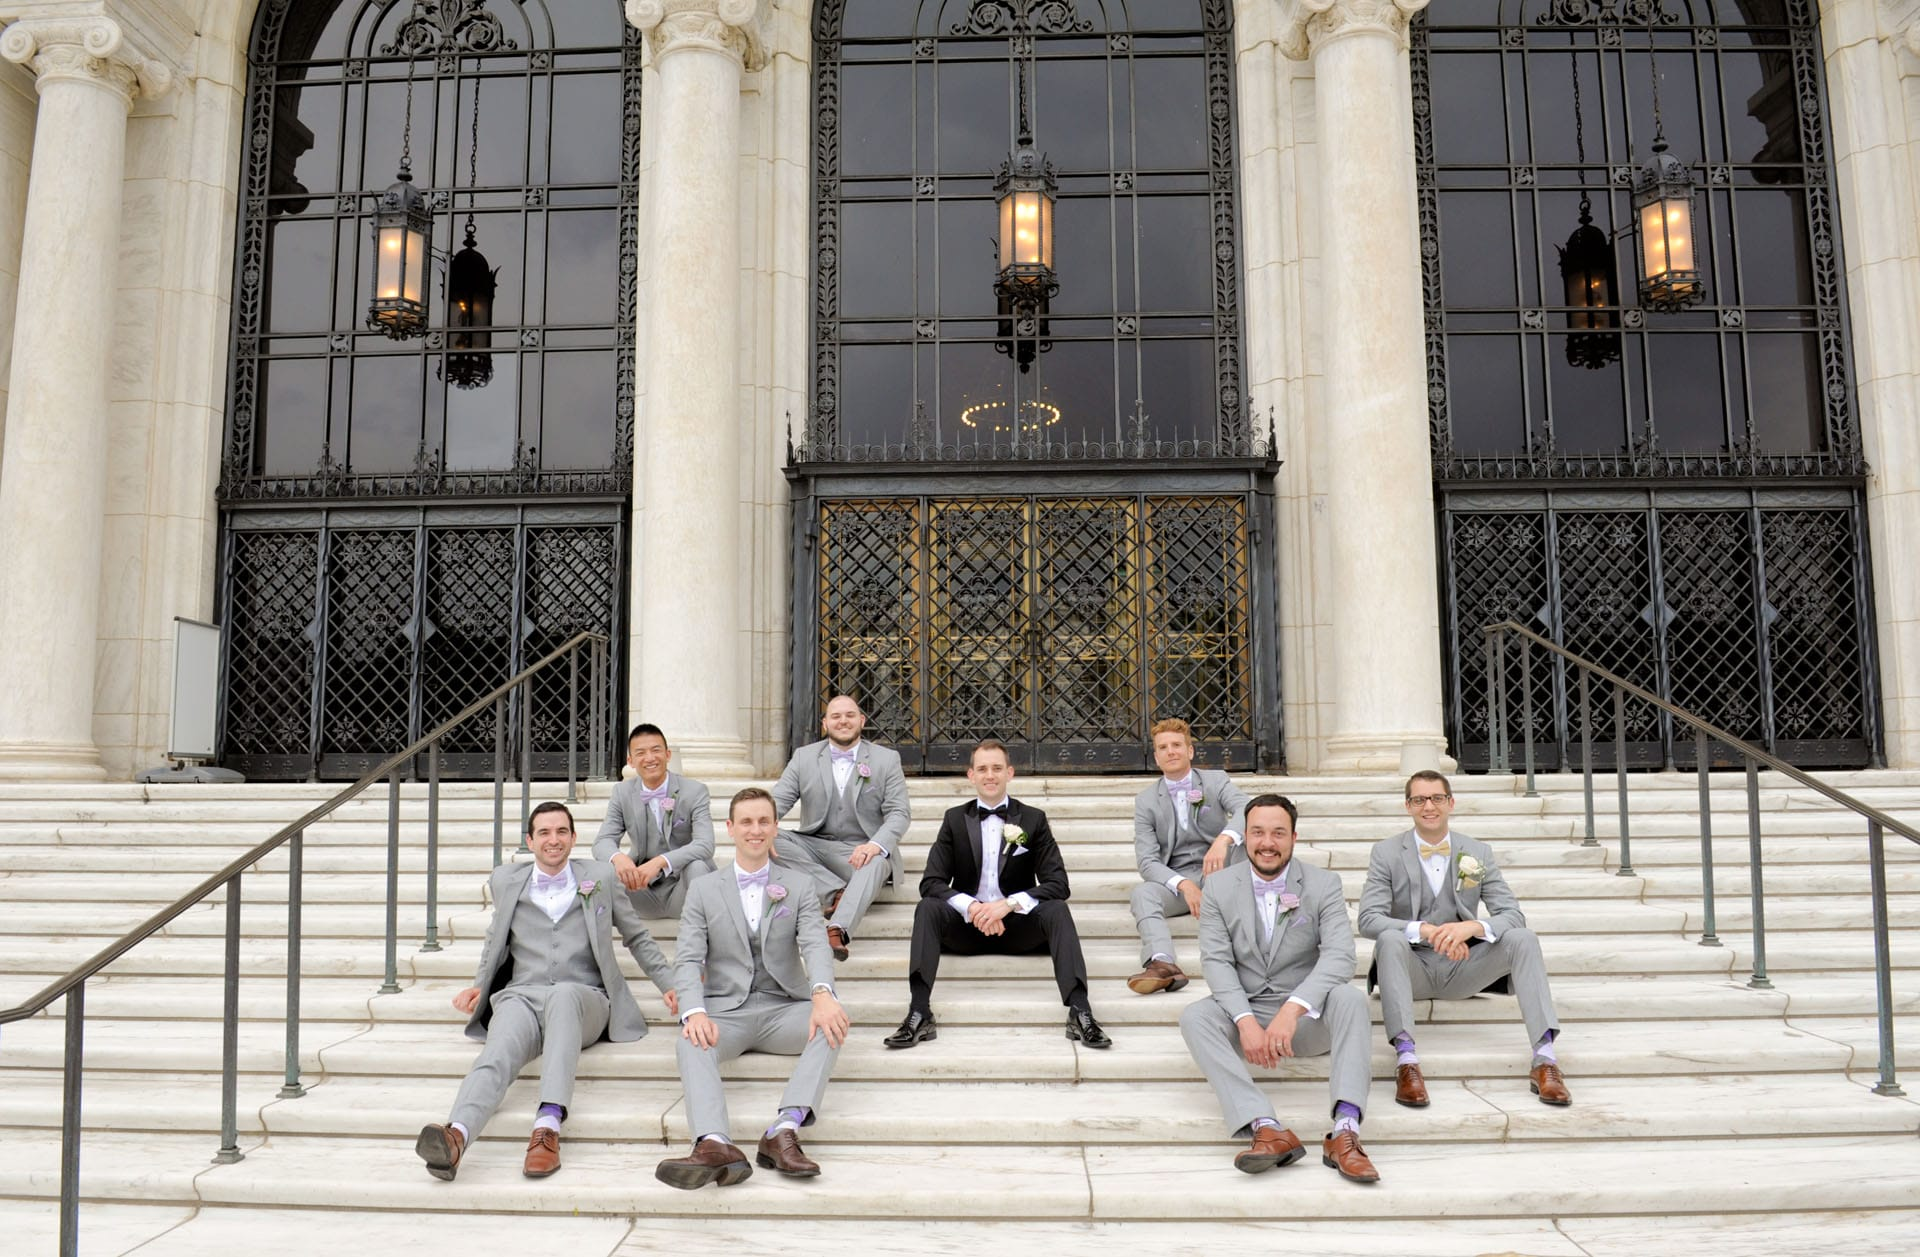 Epic Wedding portrait showing the groomsmen sitting in front of the DIA in Detroit, Michigan.